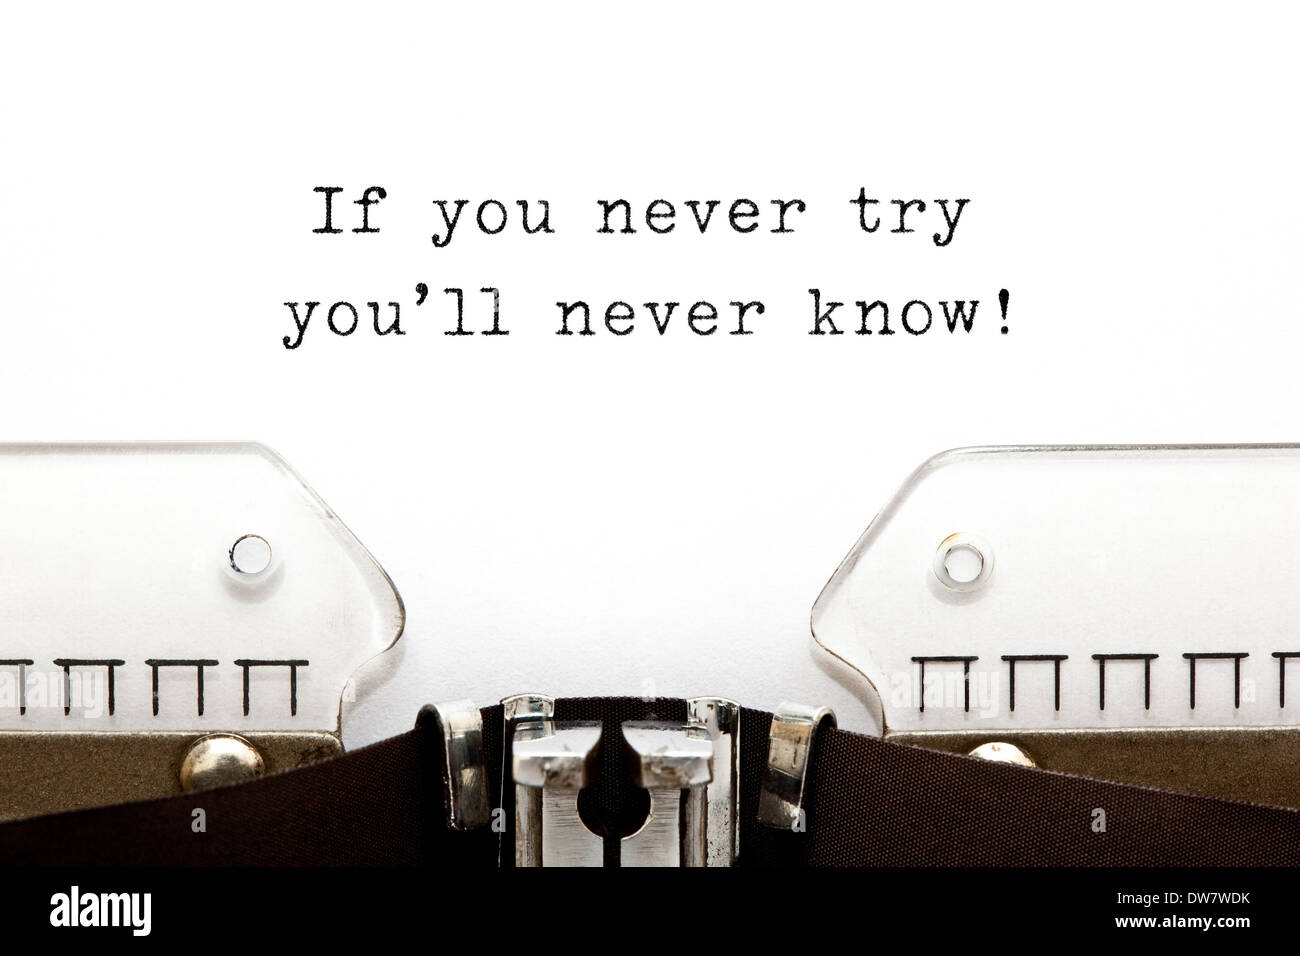 If you never try you'll never know! printed on an old typewriter